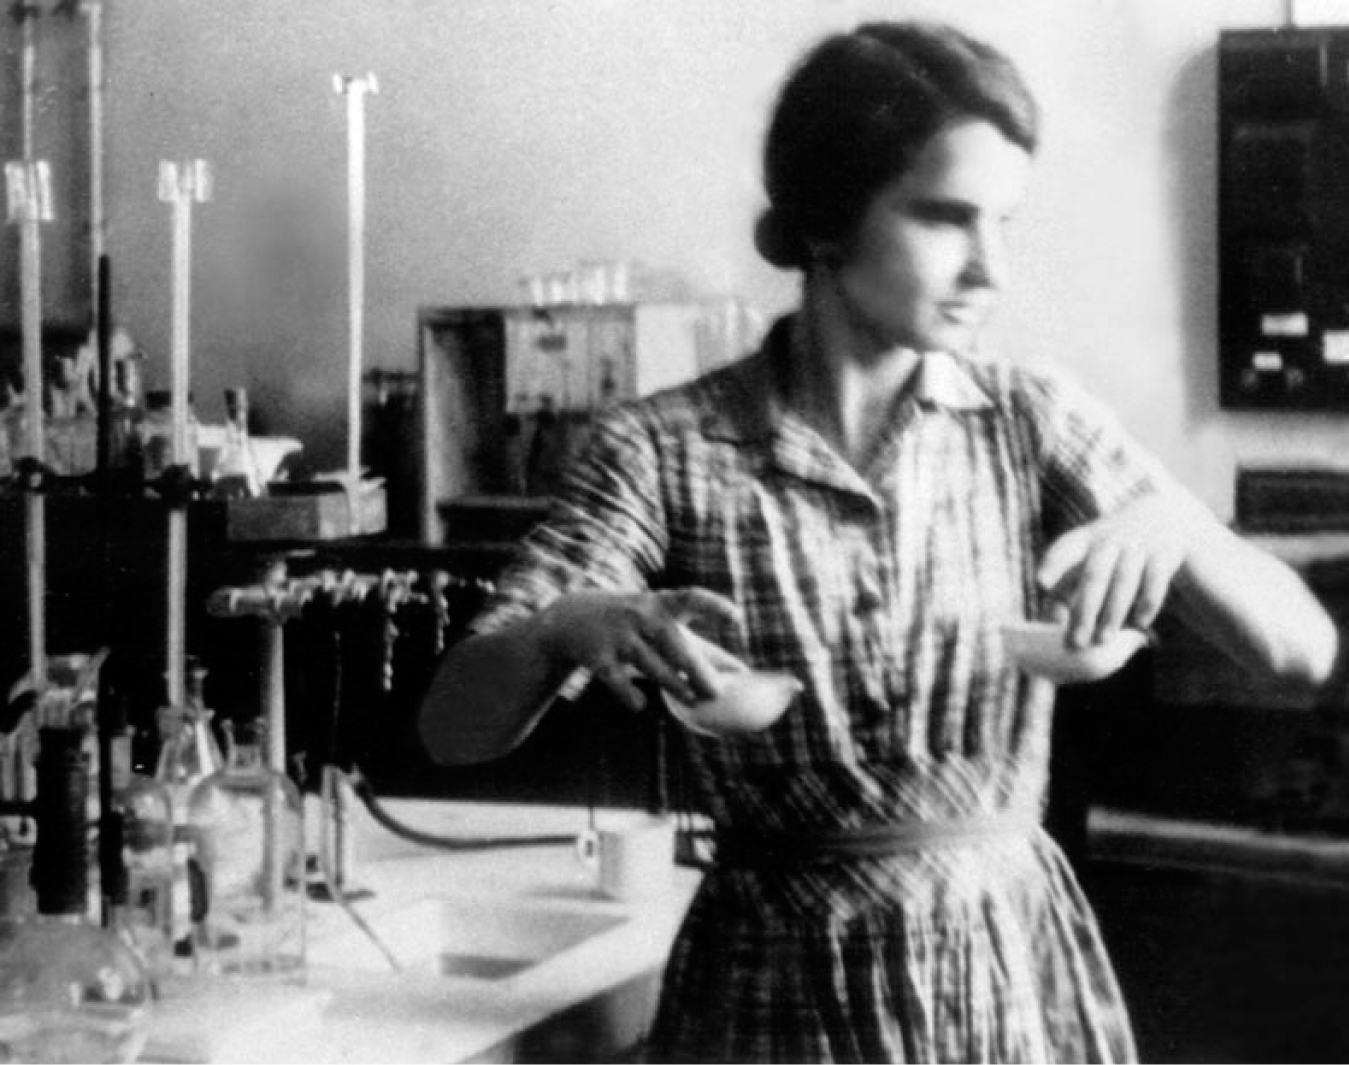 rosalind franklin essay Free essay: rosalind franklin as hard as is it is today for women to succeed in the sciences, one must give kudos to those that came before us these are the.